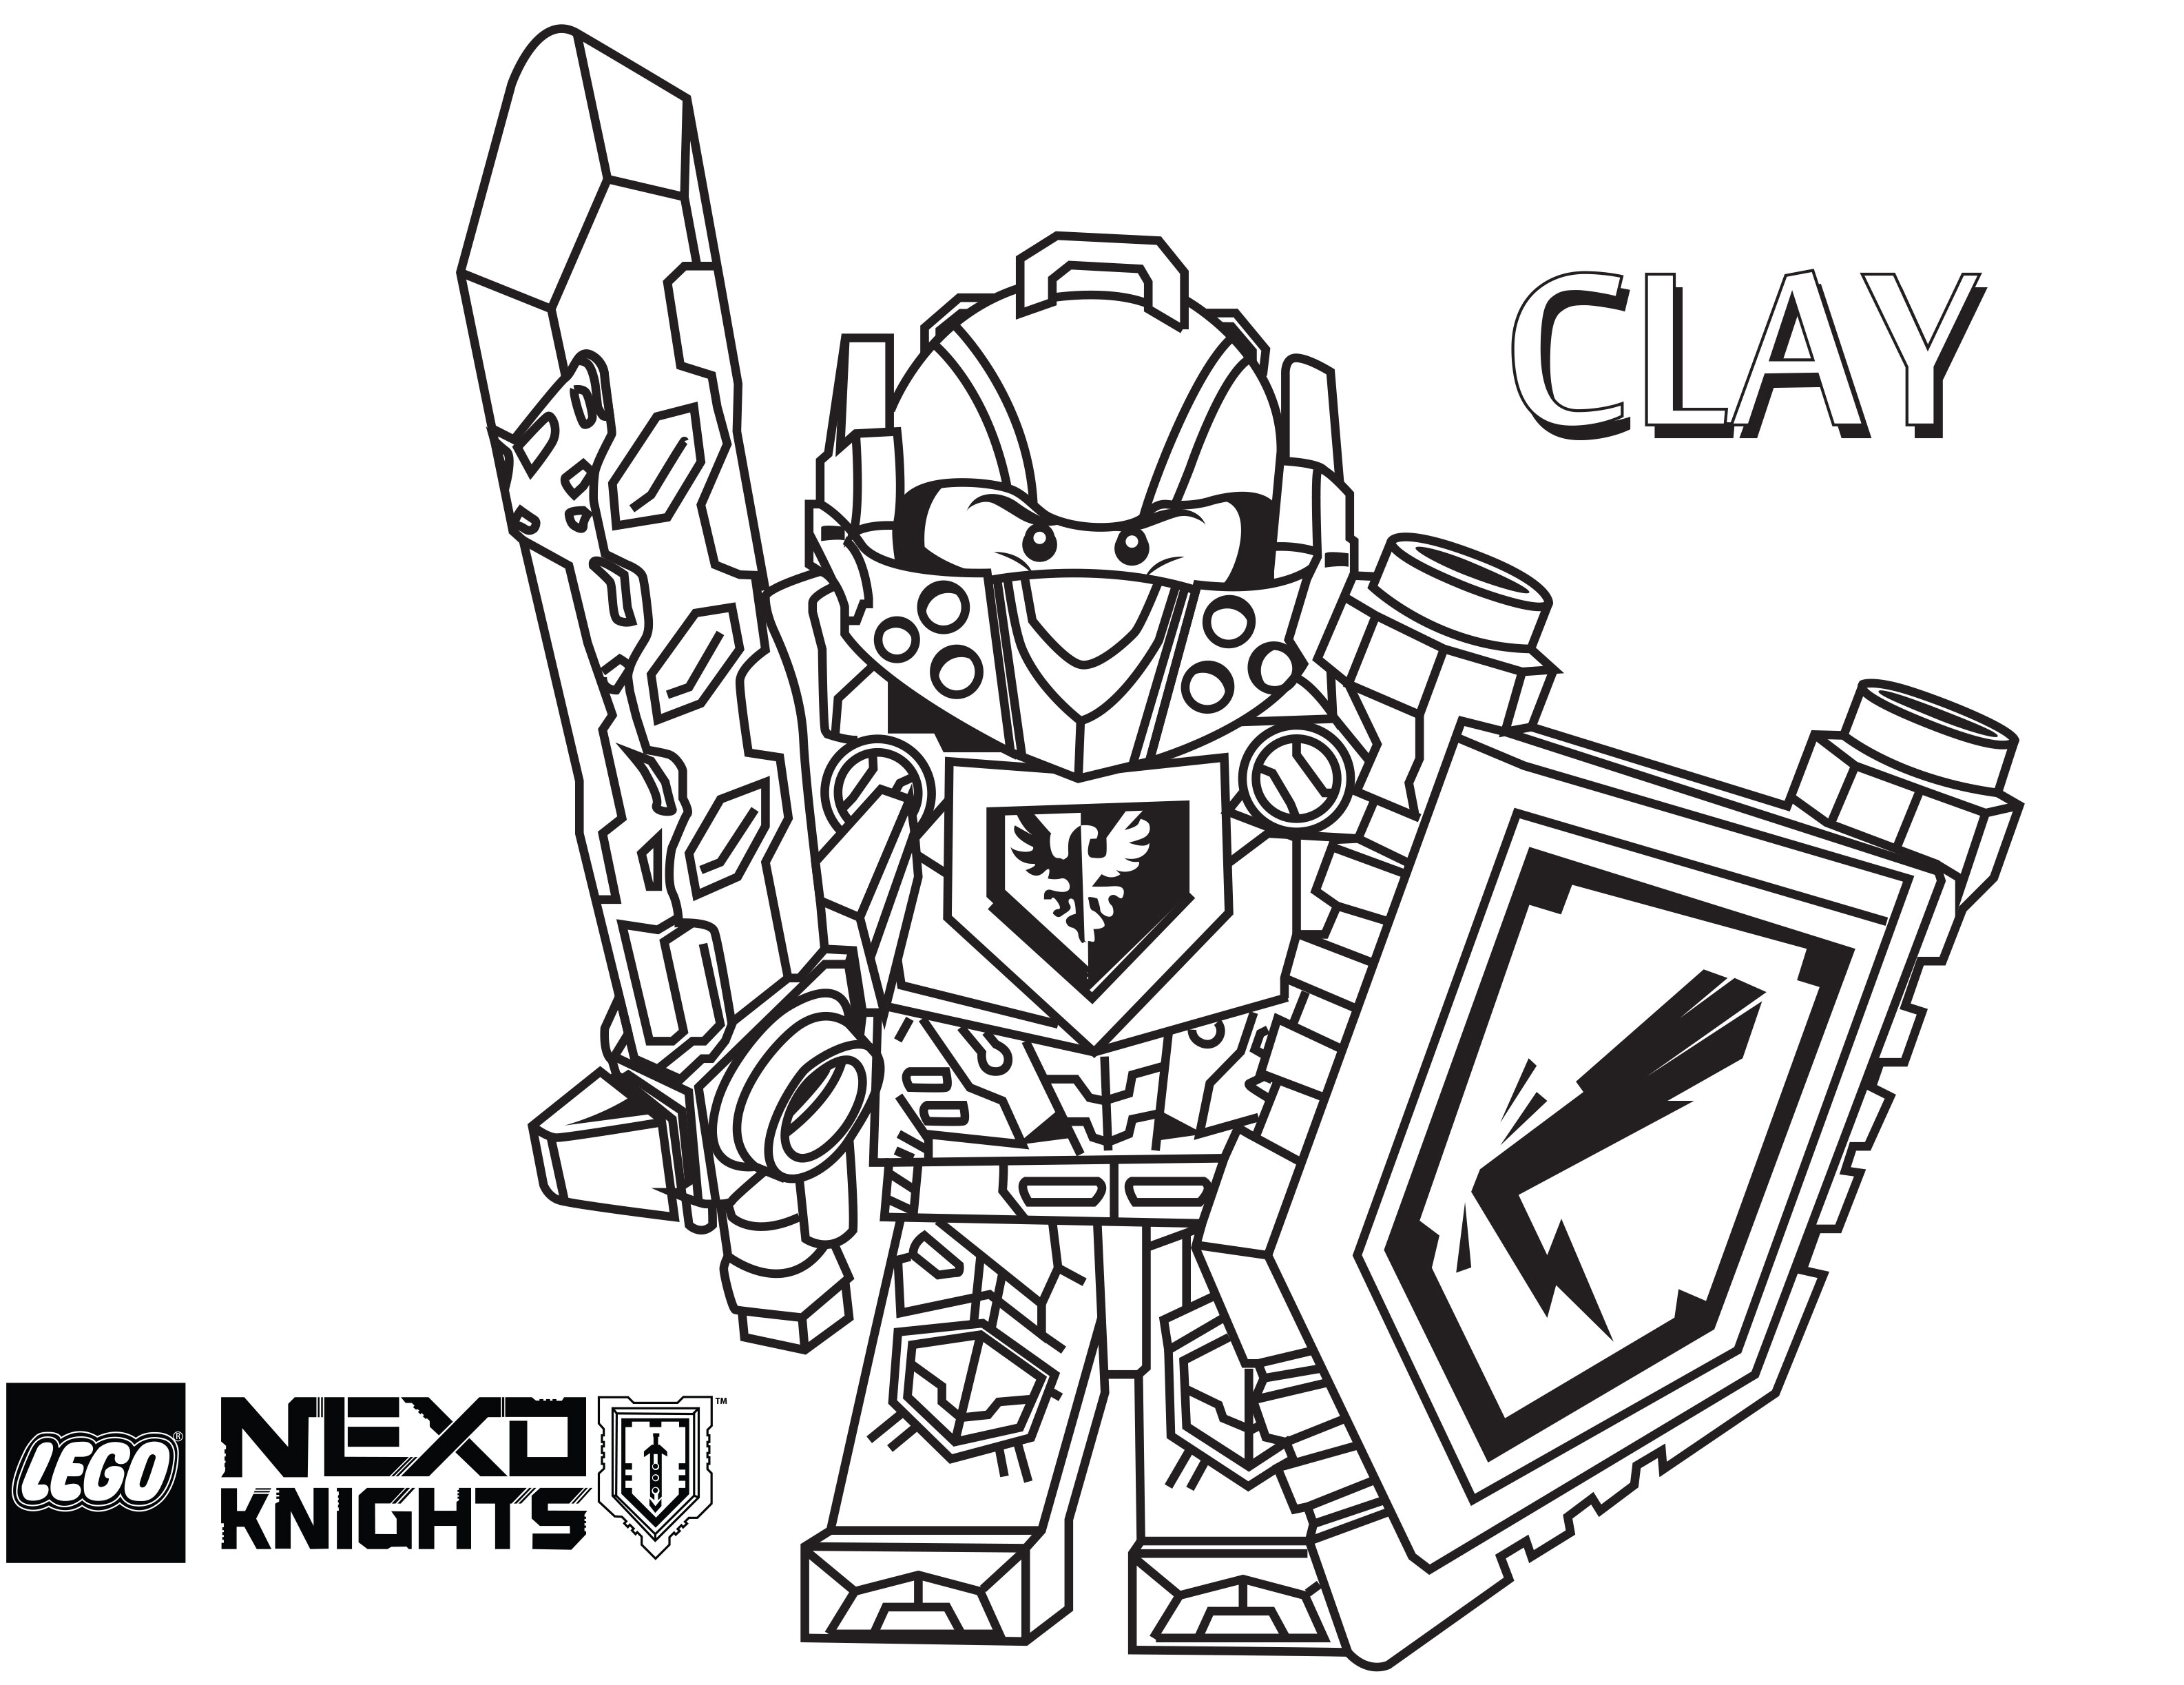 3171x2446 Lego Nexo Knights Coloring Pages Free Printable Lego Nexo